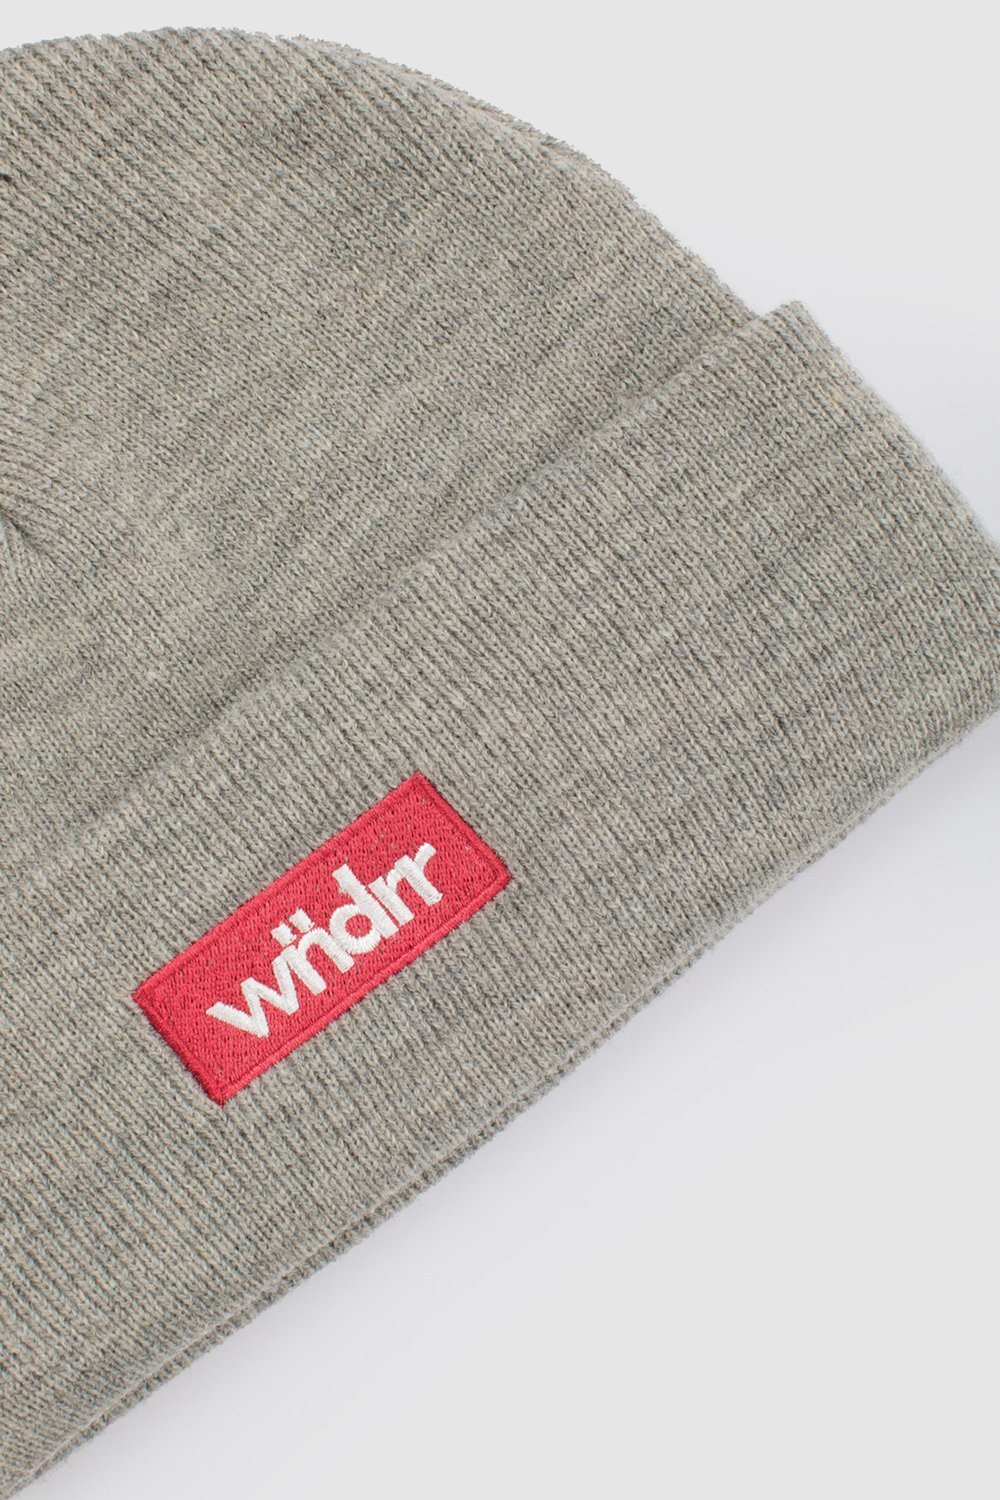 REACT BEANIE - GREY WNDRR Imperial Clothing